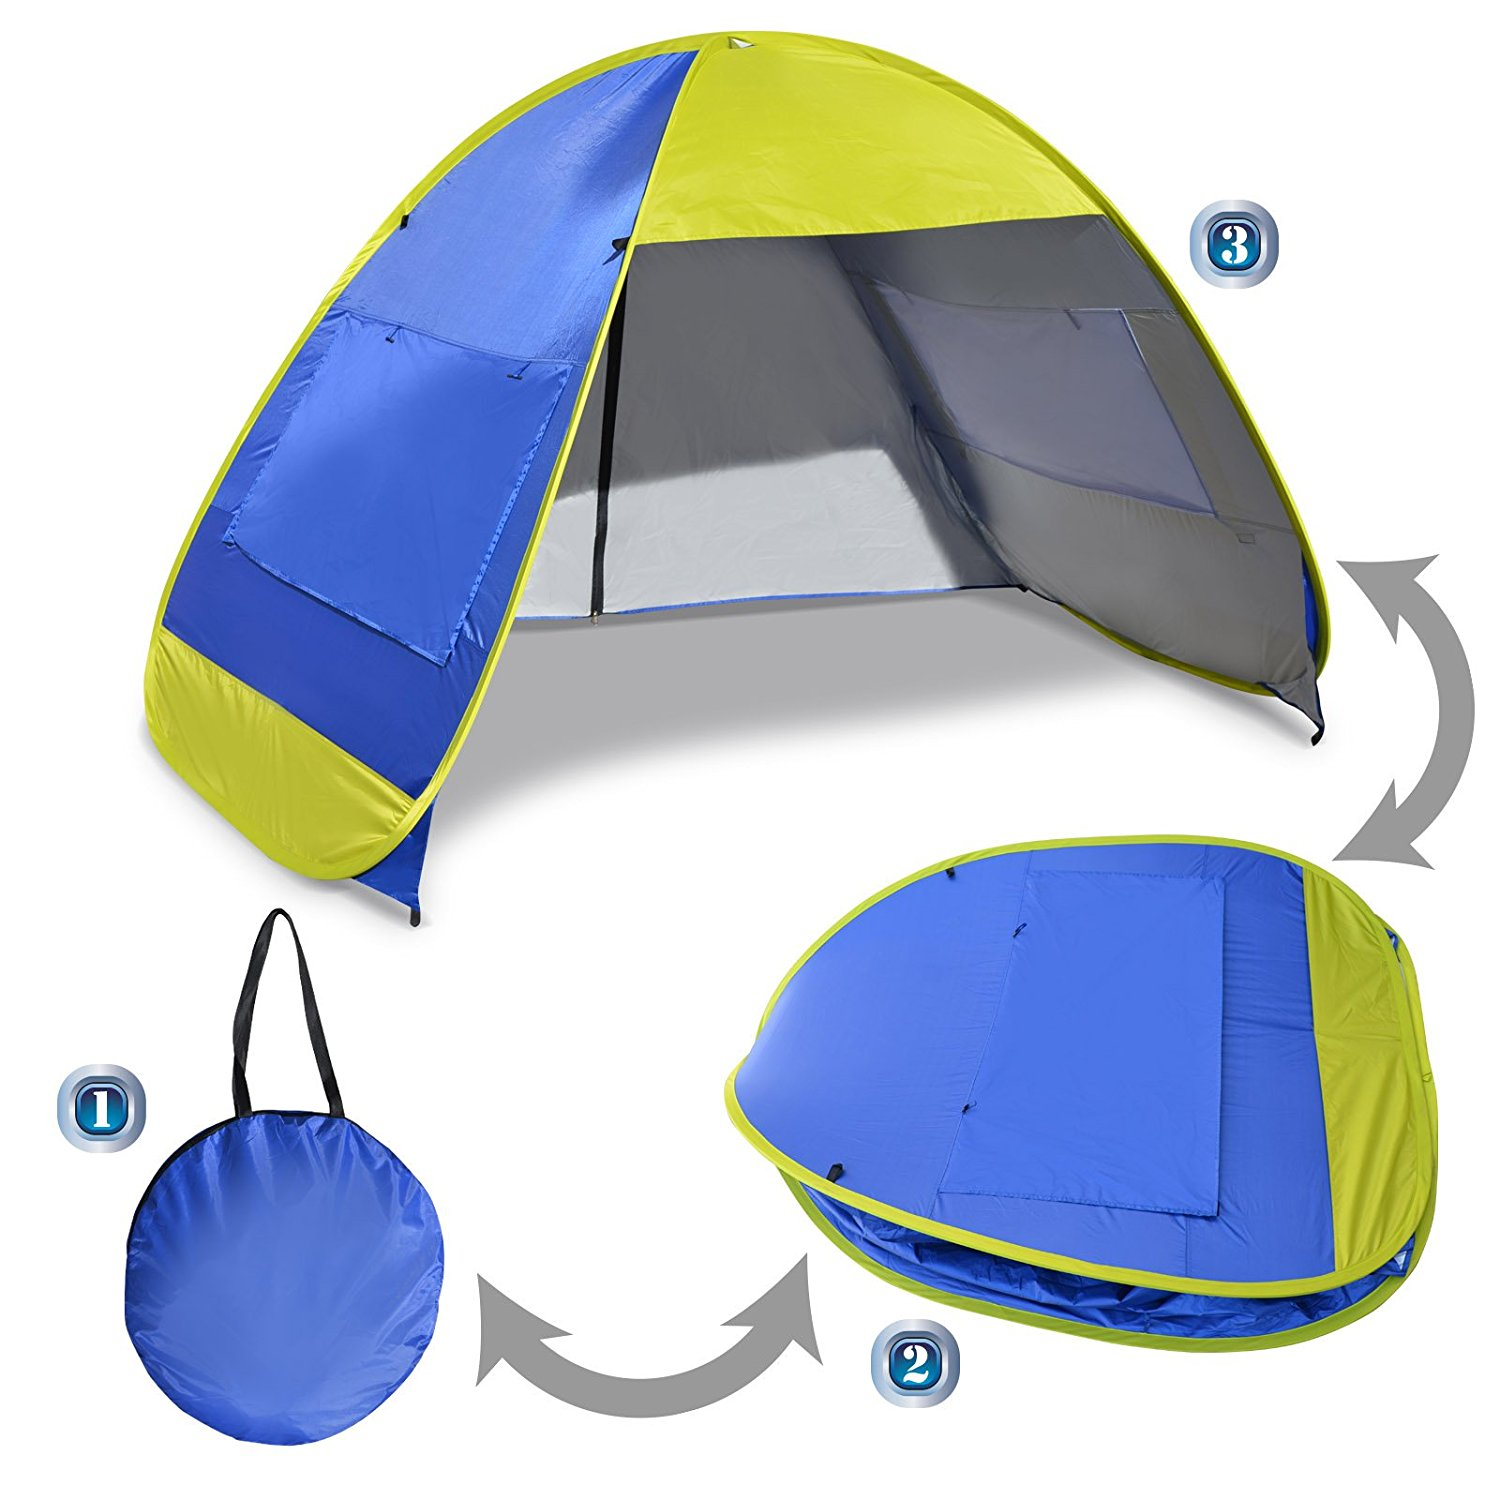 Sunrise Portable Pop Up Beach Tent Sun Shade Shelter, Outdoor Hiking, Traveling, Camping, Blue and Yellow by Sunrise Umbrella Inc